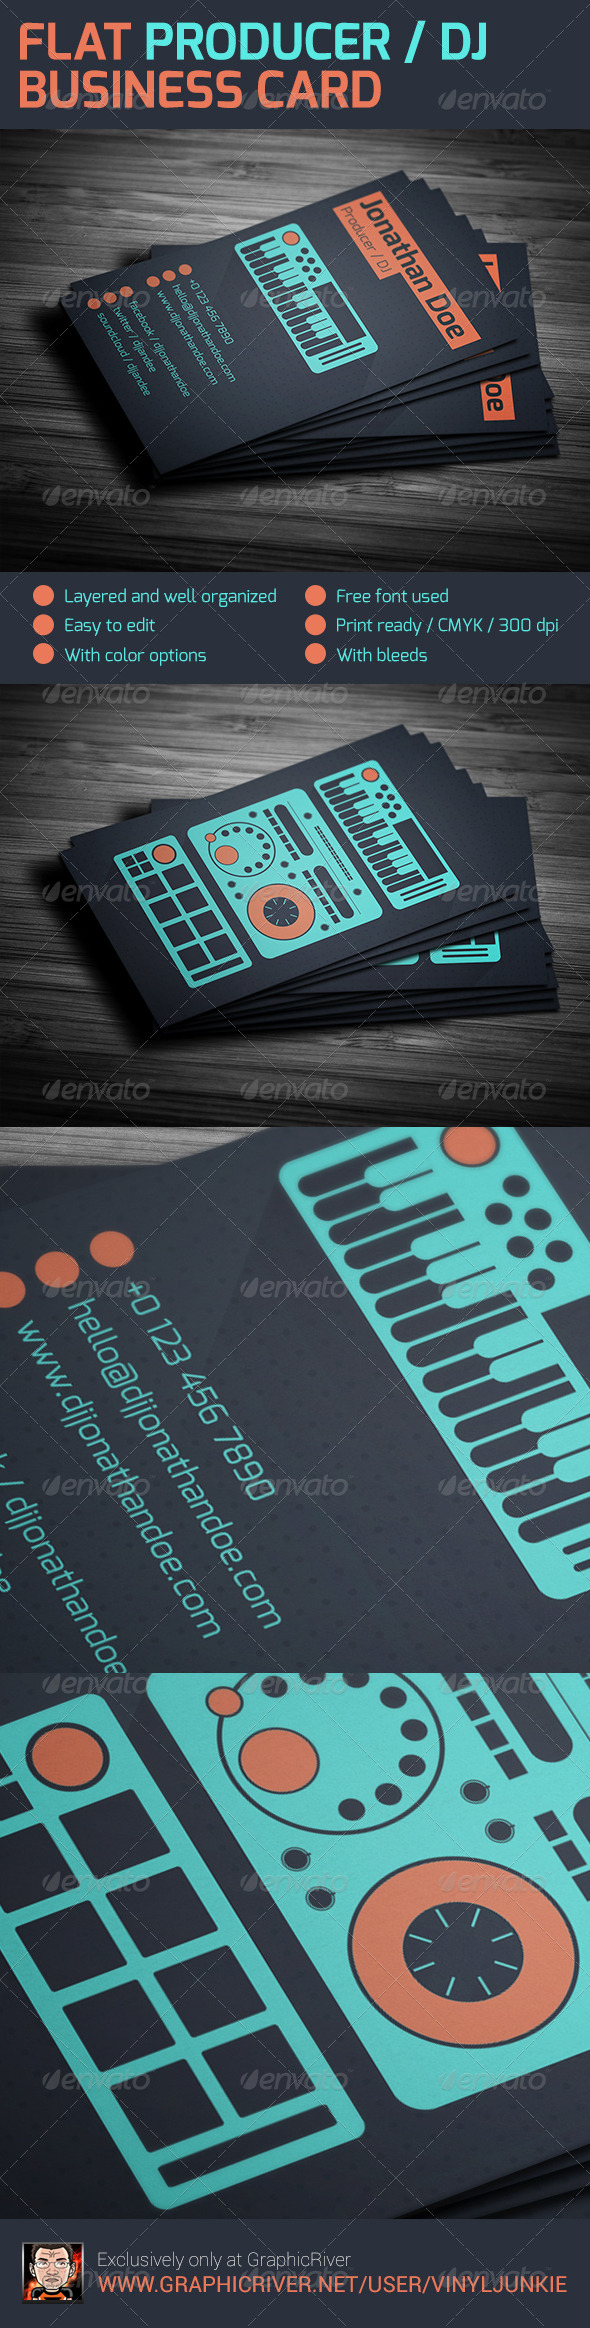 GraphicRiver Flat Producer DJ Business Card 5954168